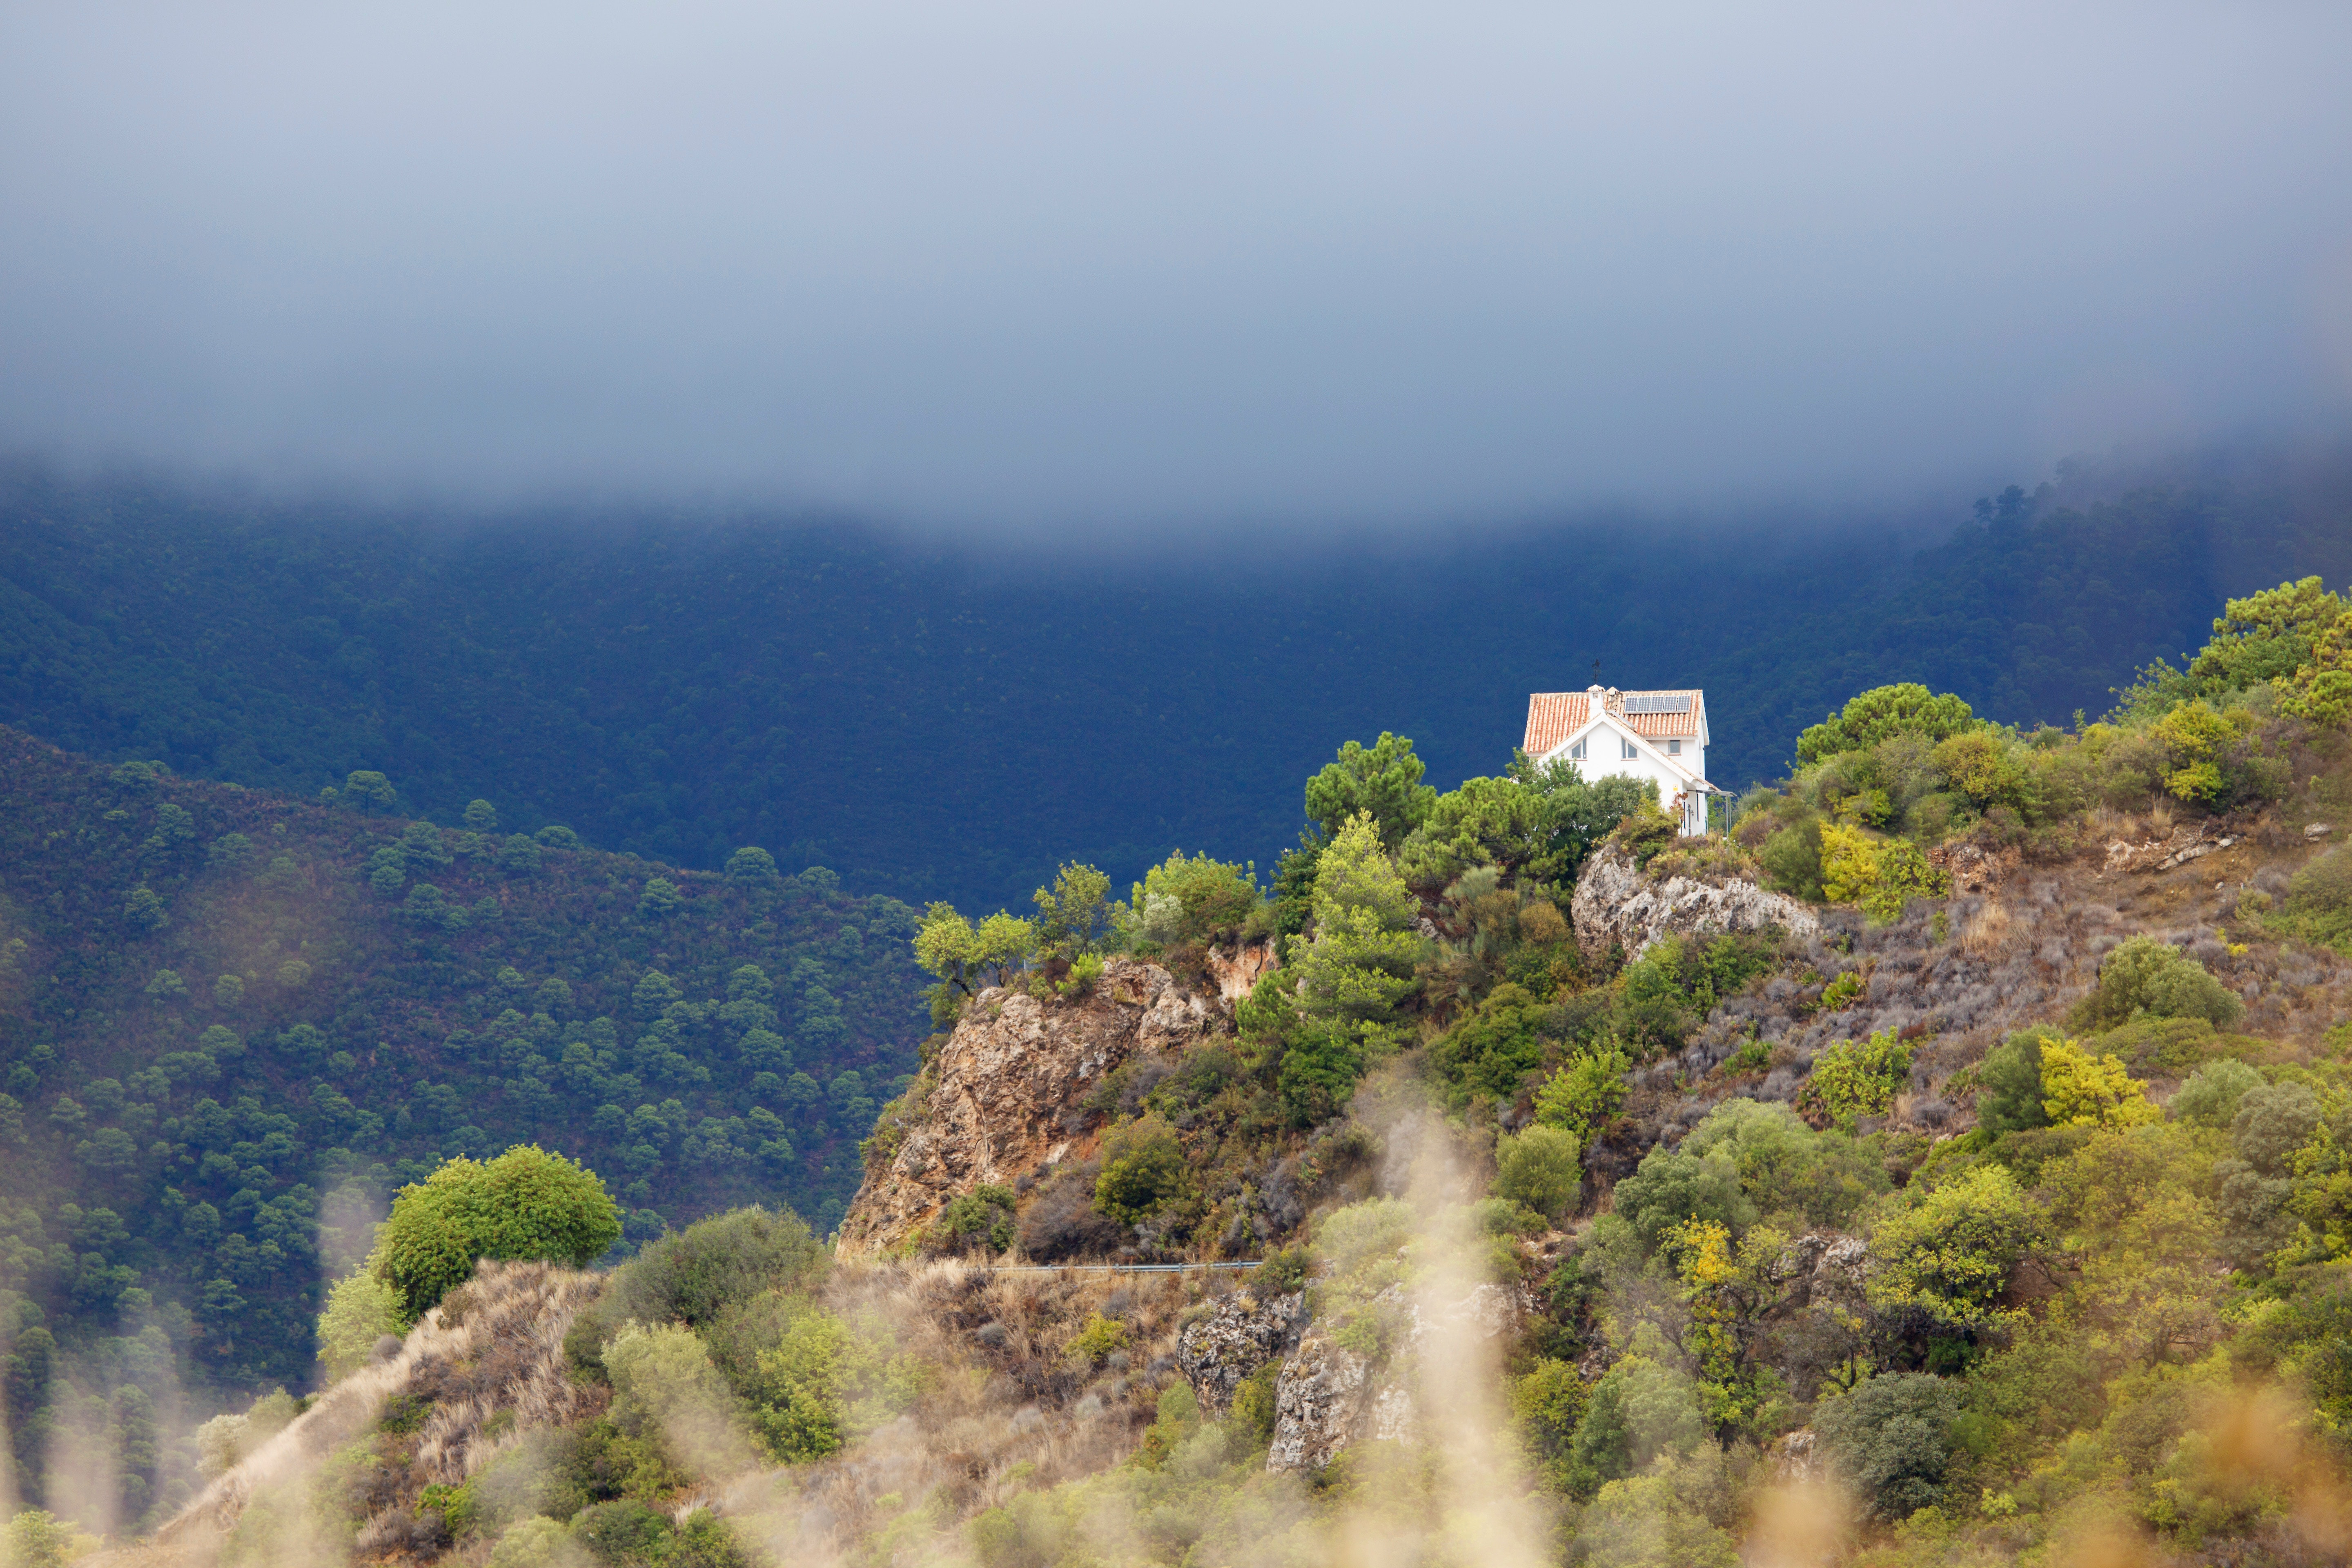 White house on mountain during cloudy day photo